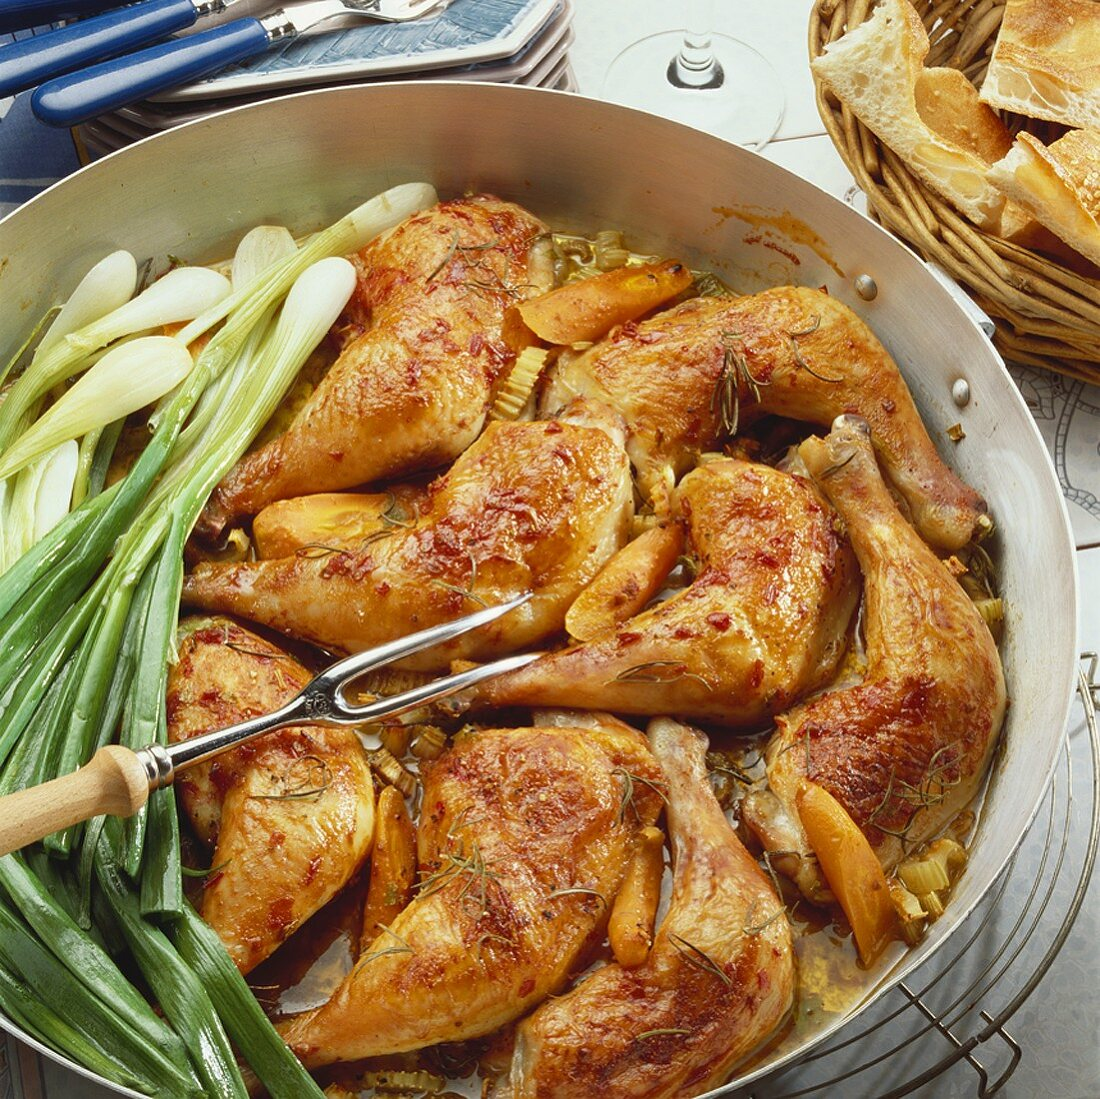 Braised chicken legs with vegetables and rosemary